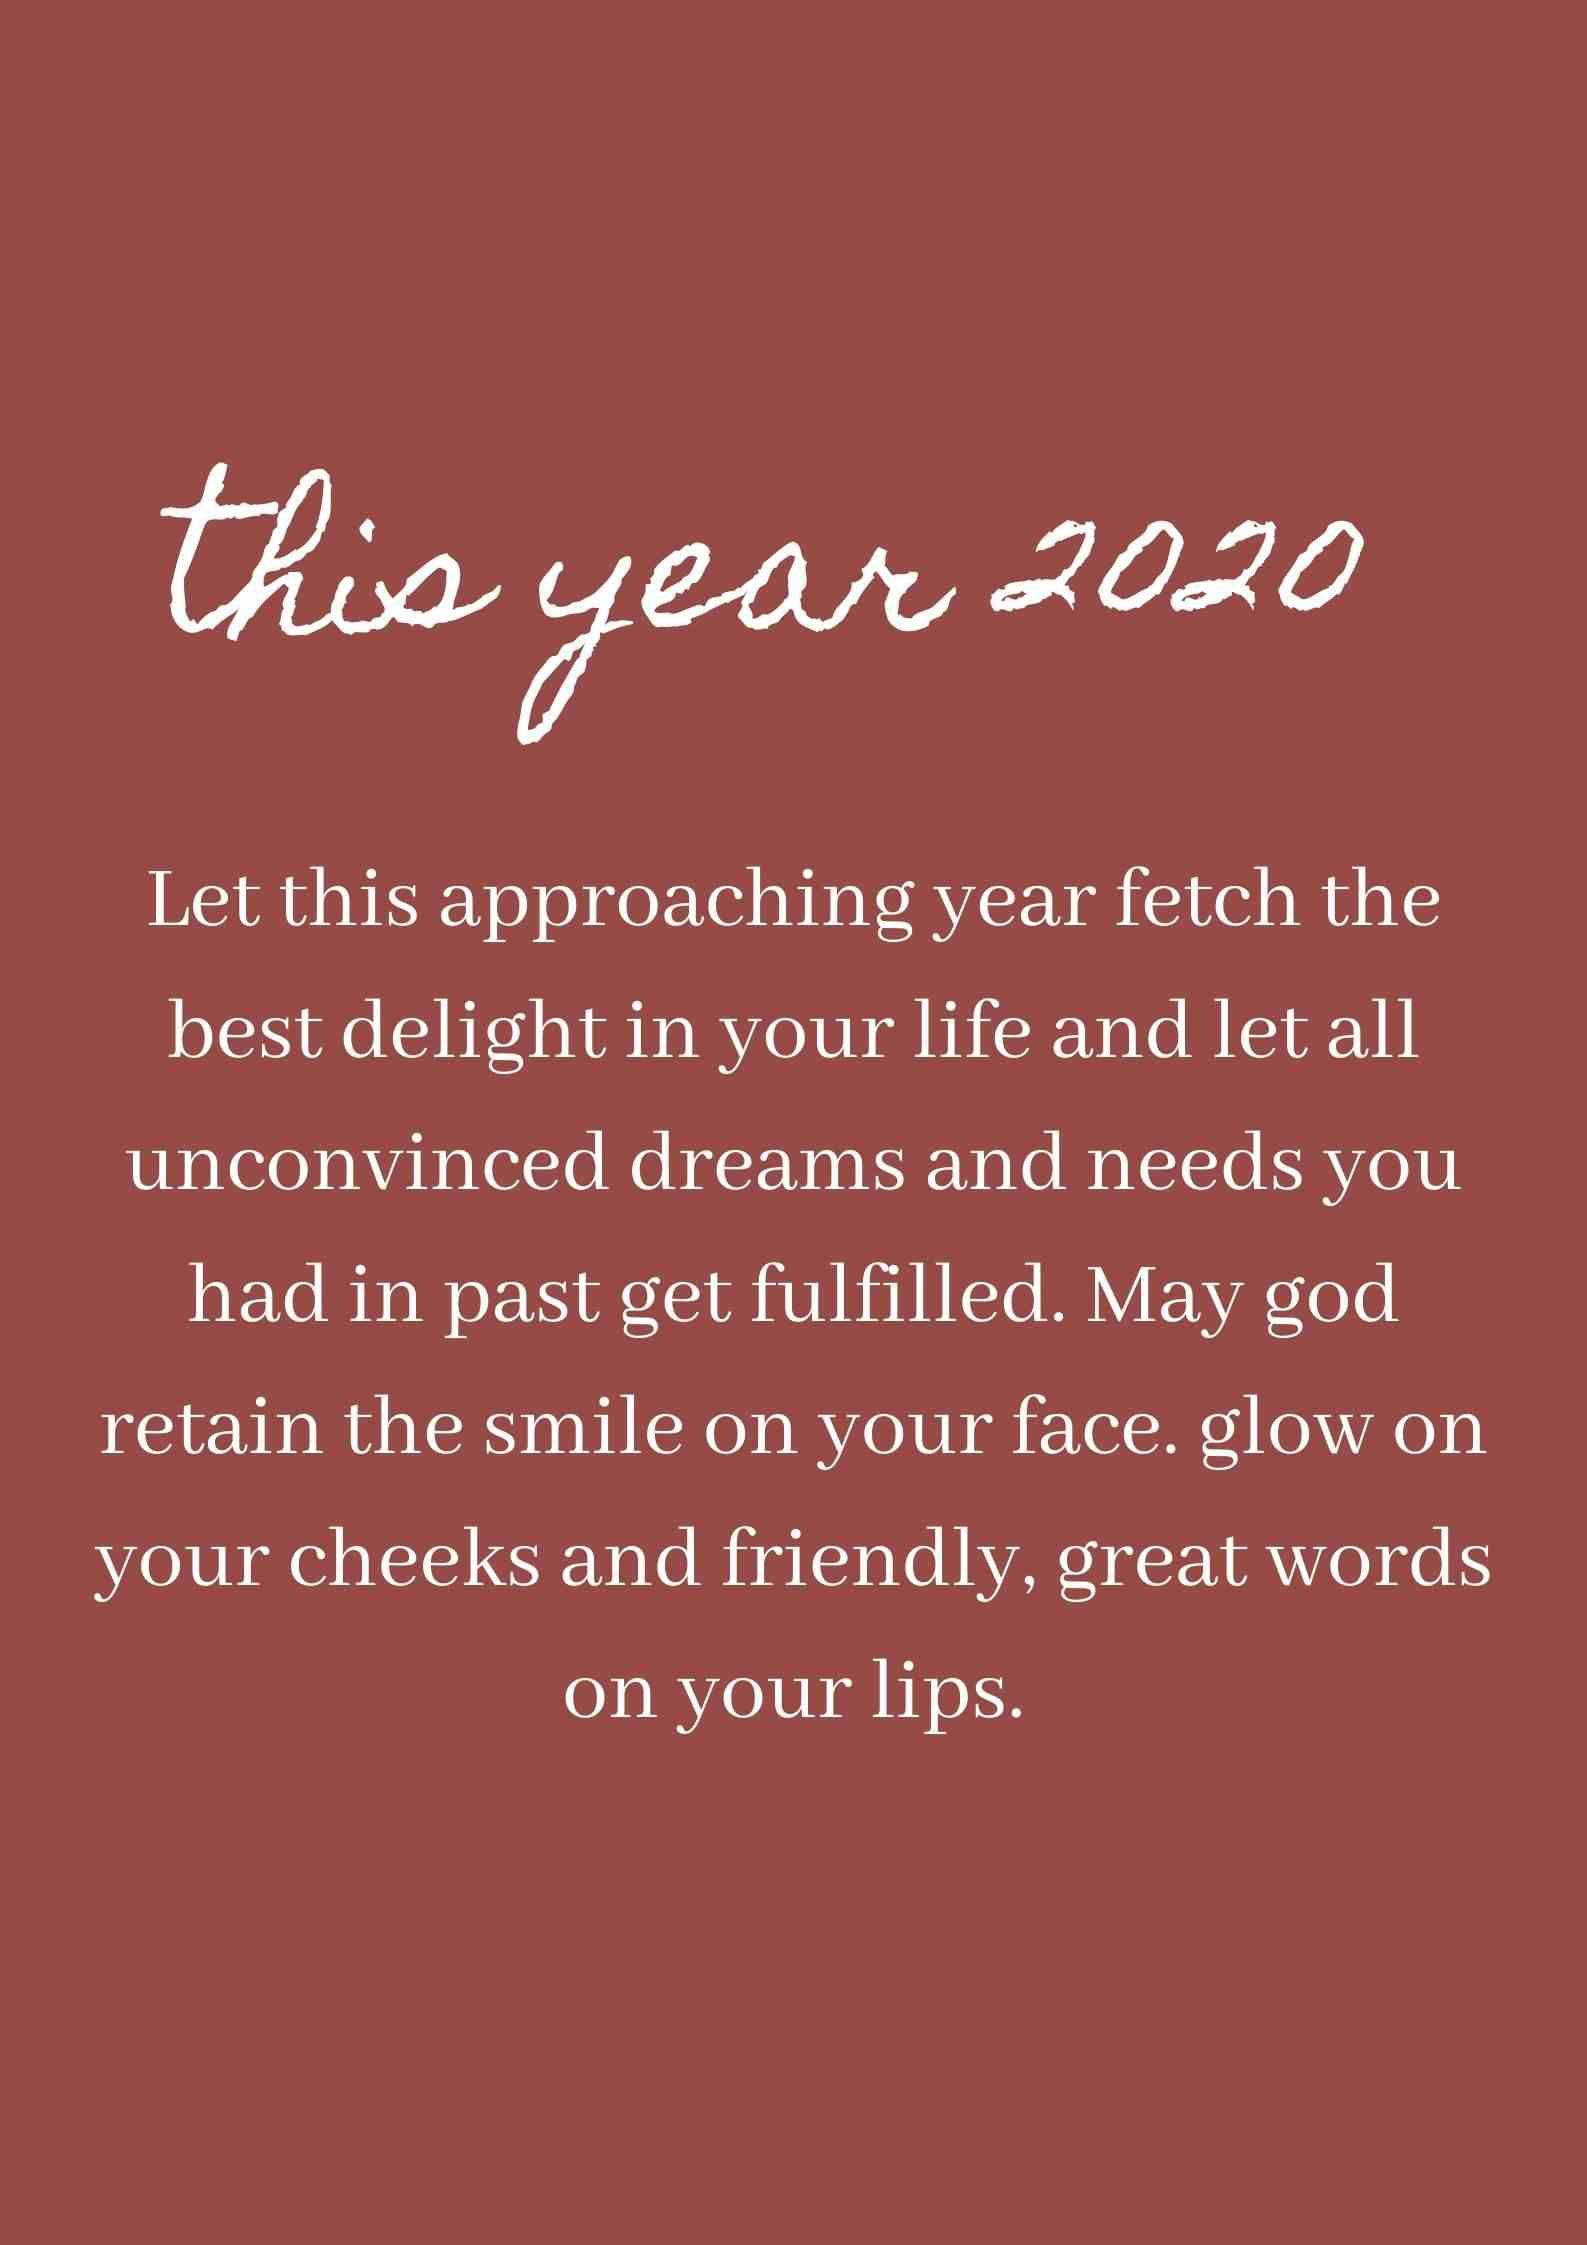 Nye Wishes 2020 Greetings And Cards Happy New Year Quotes Year Quotes Quotes About New Year